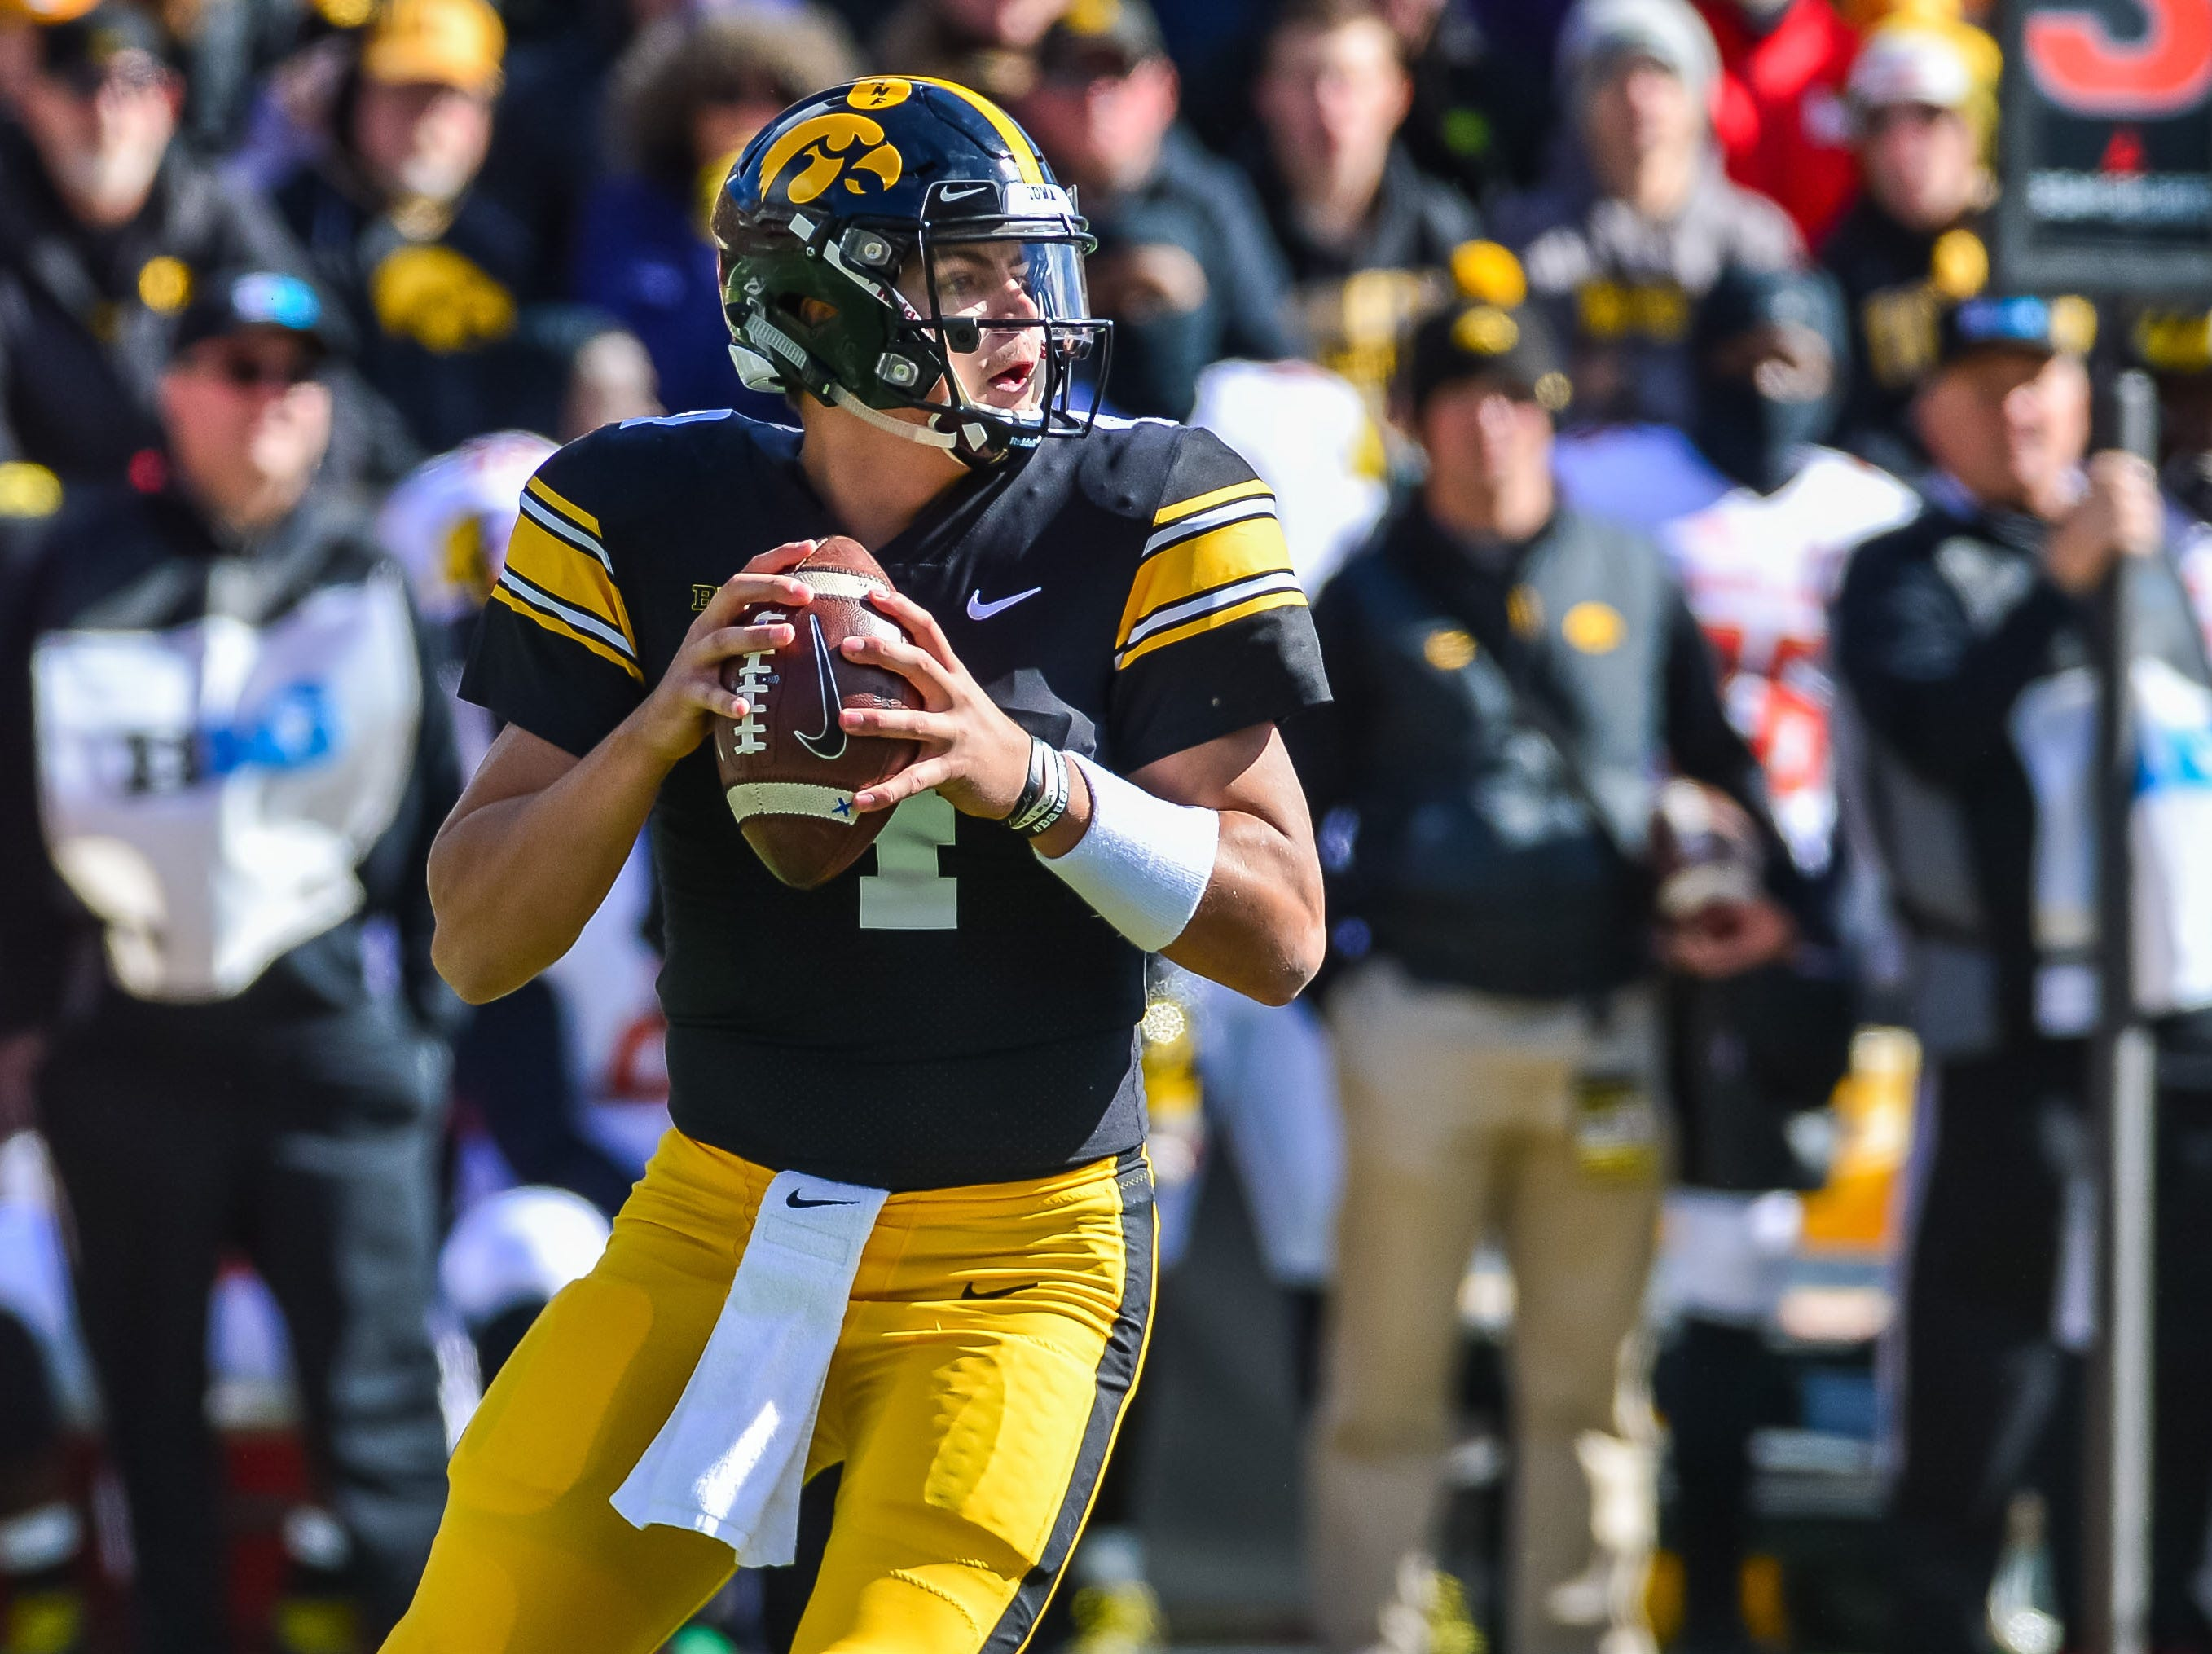 Hawkeyes quarterback Nate Stanley looks to pass during the third quarter on Oct. 20, 2018, against the Maryland Terrapins at Kinnick Stadium.